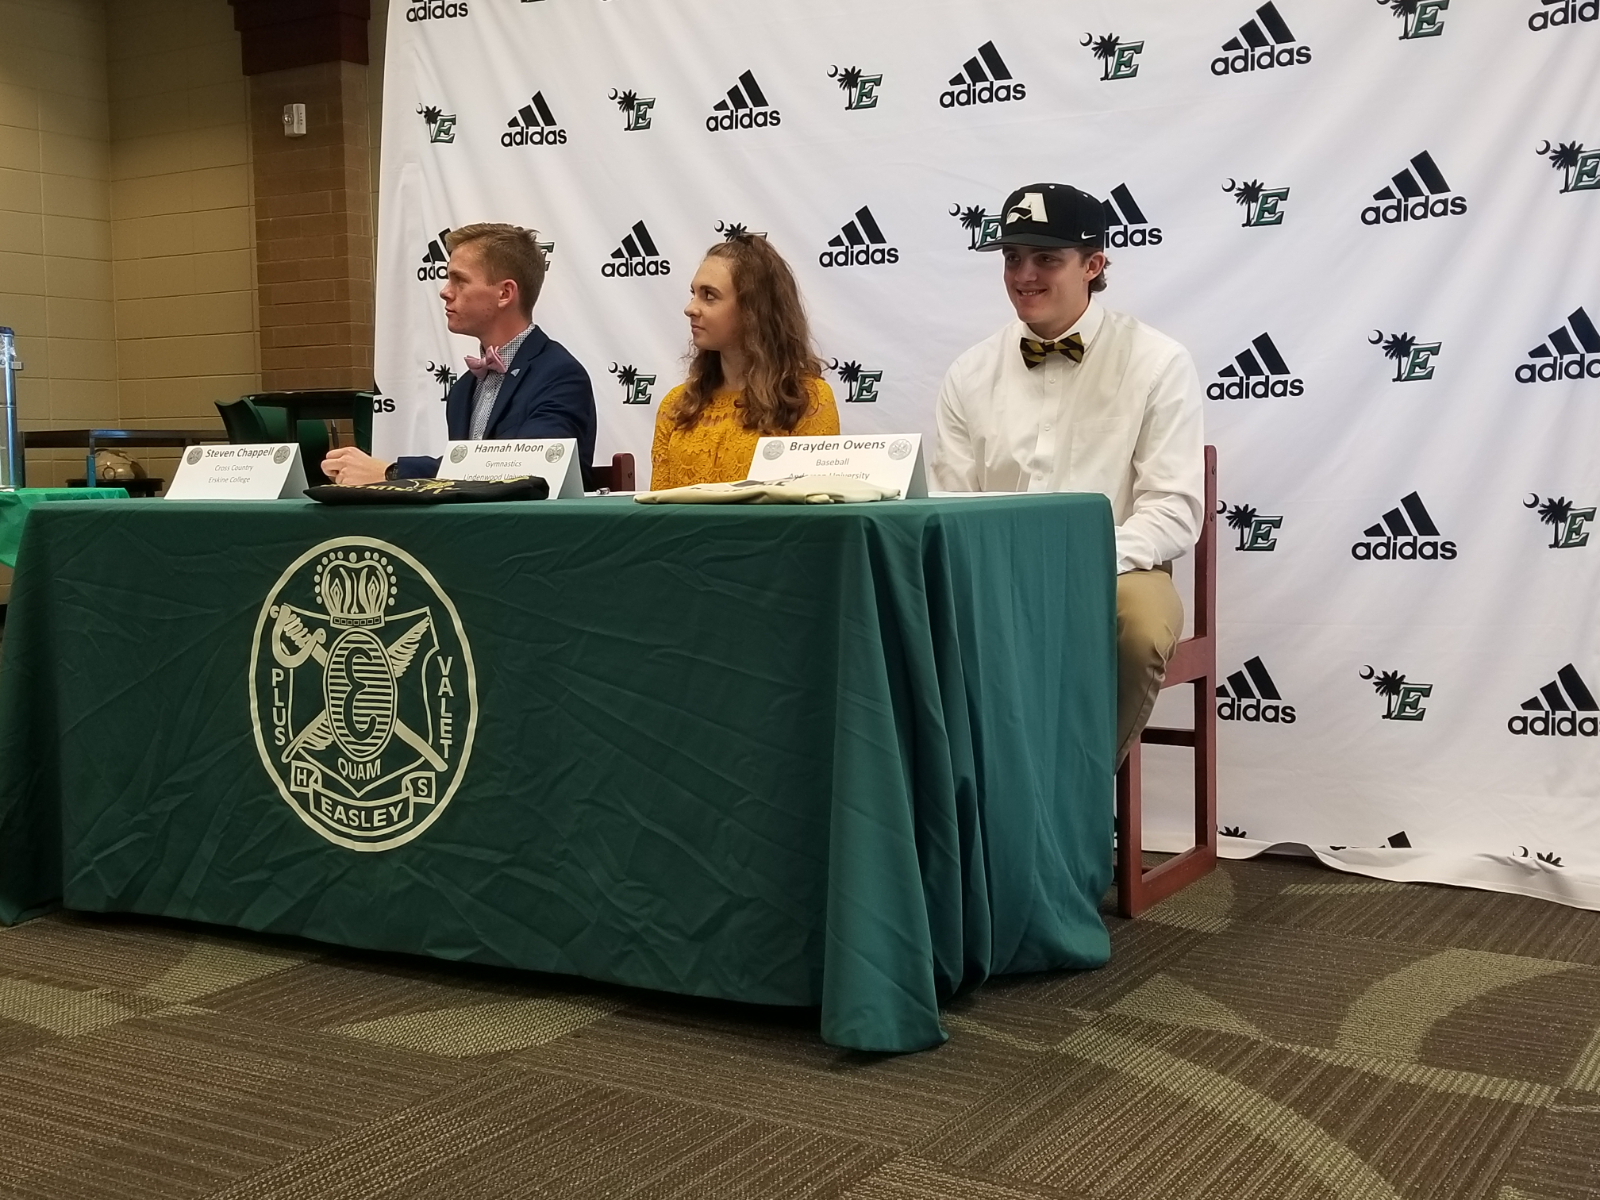 Fall Signing Day at Easley High School